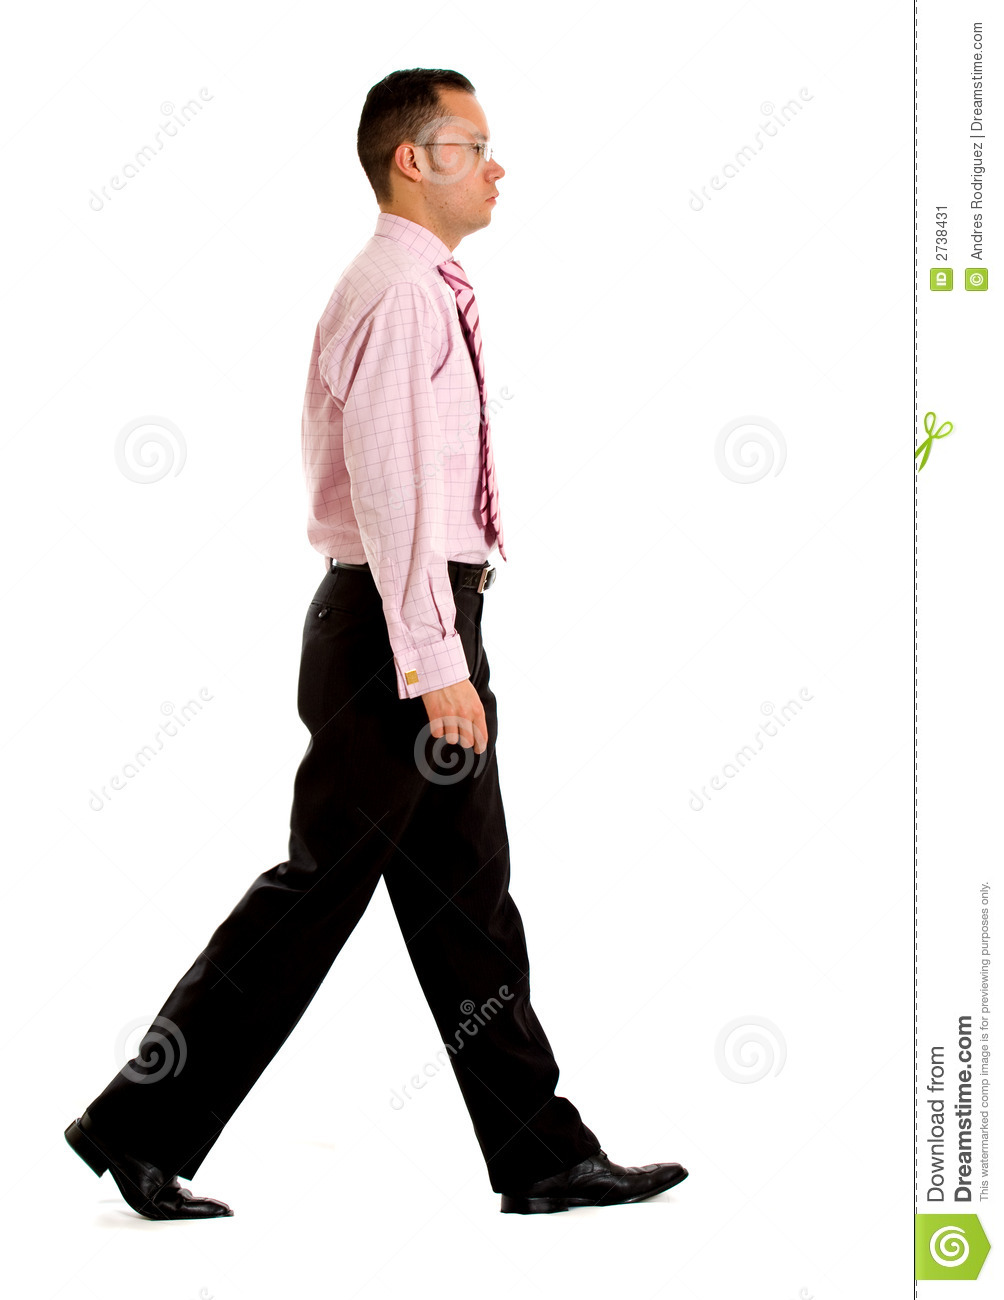 business-man-walking-2738431.jpg